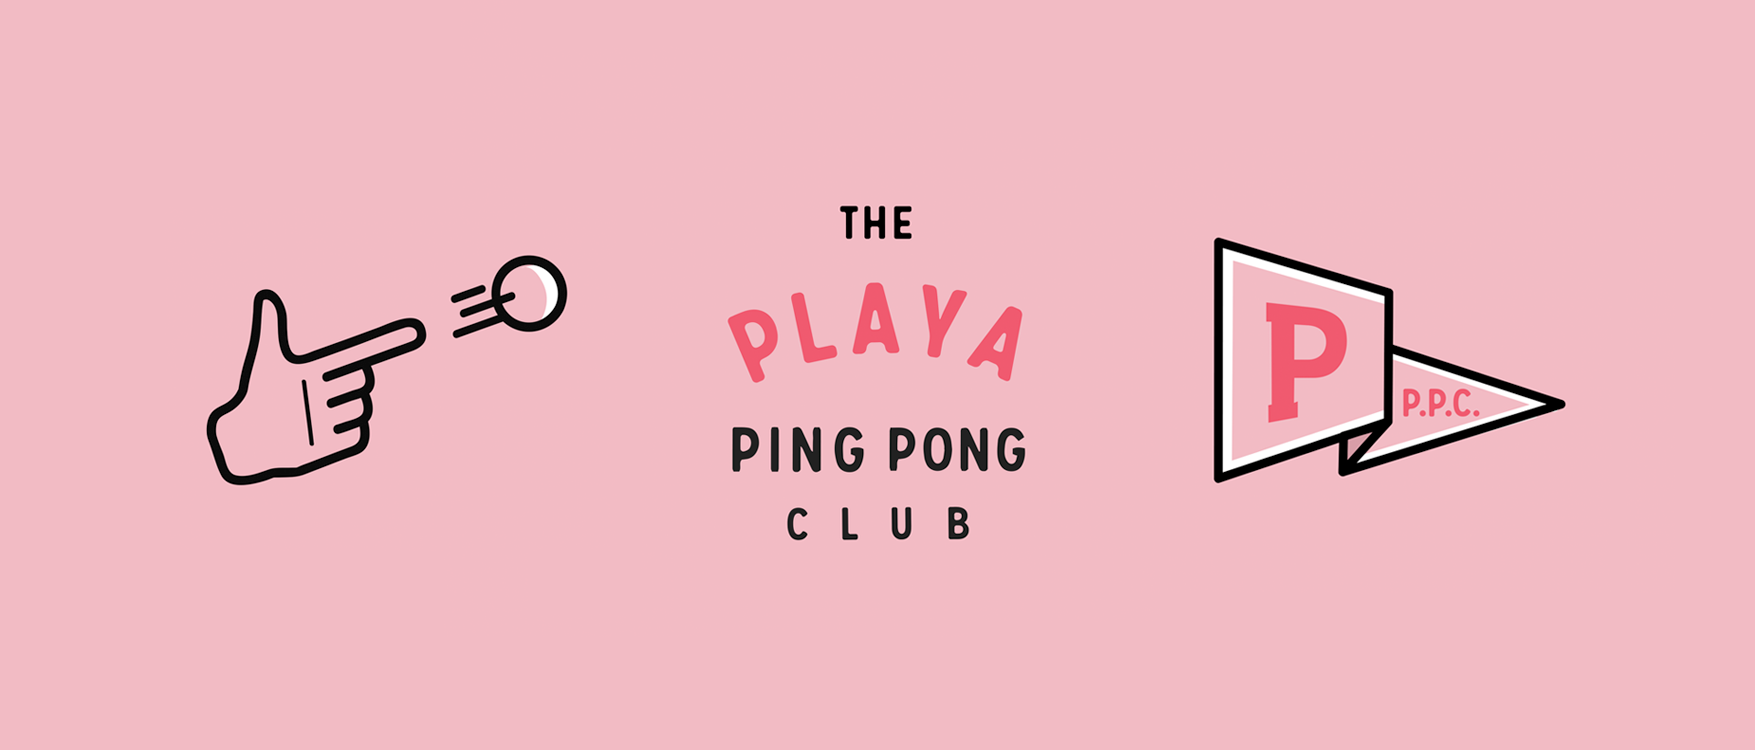 Playa icons layout